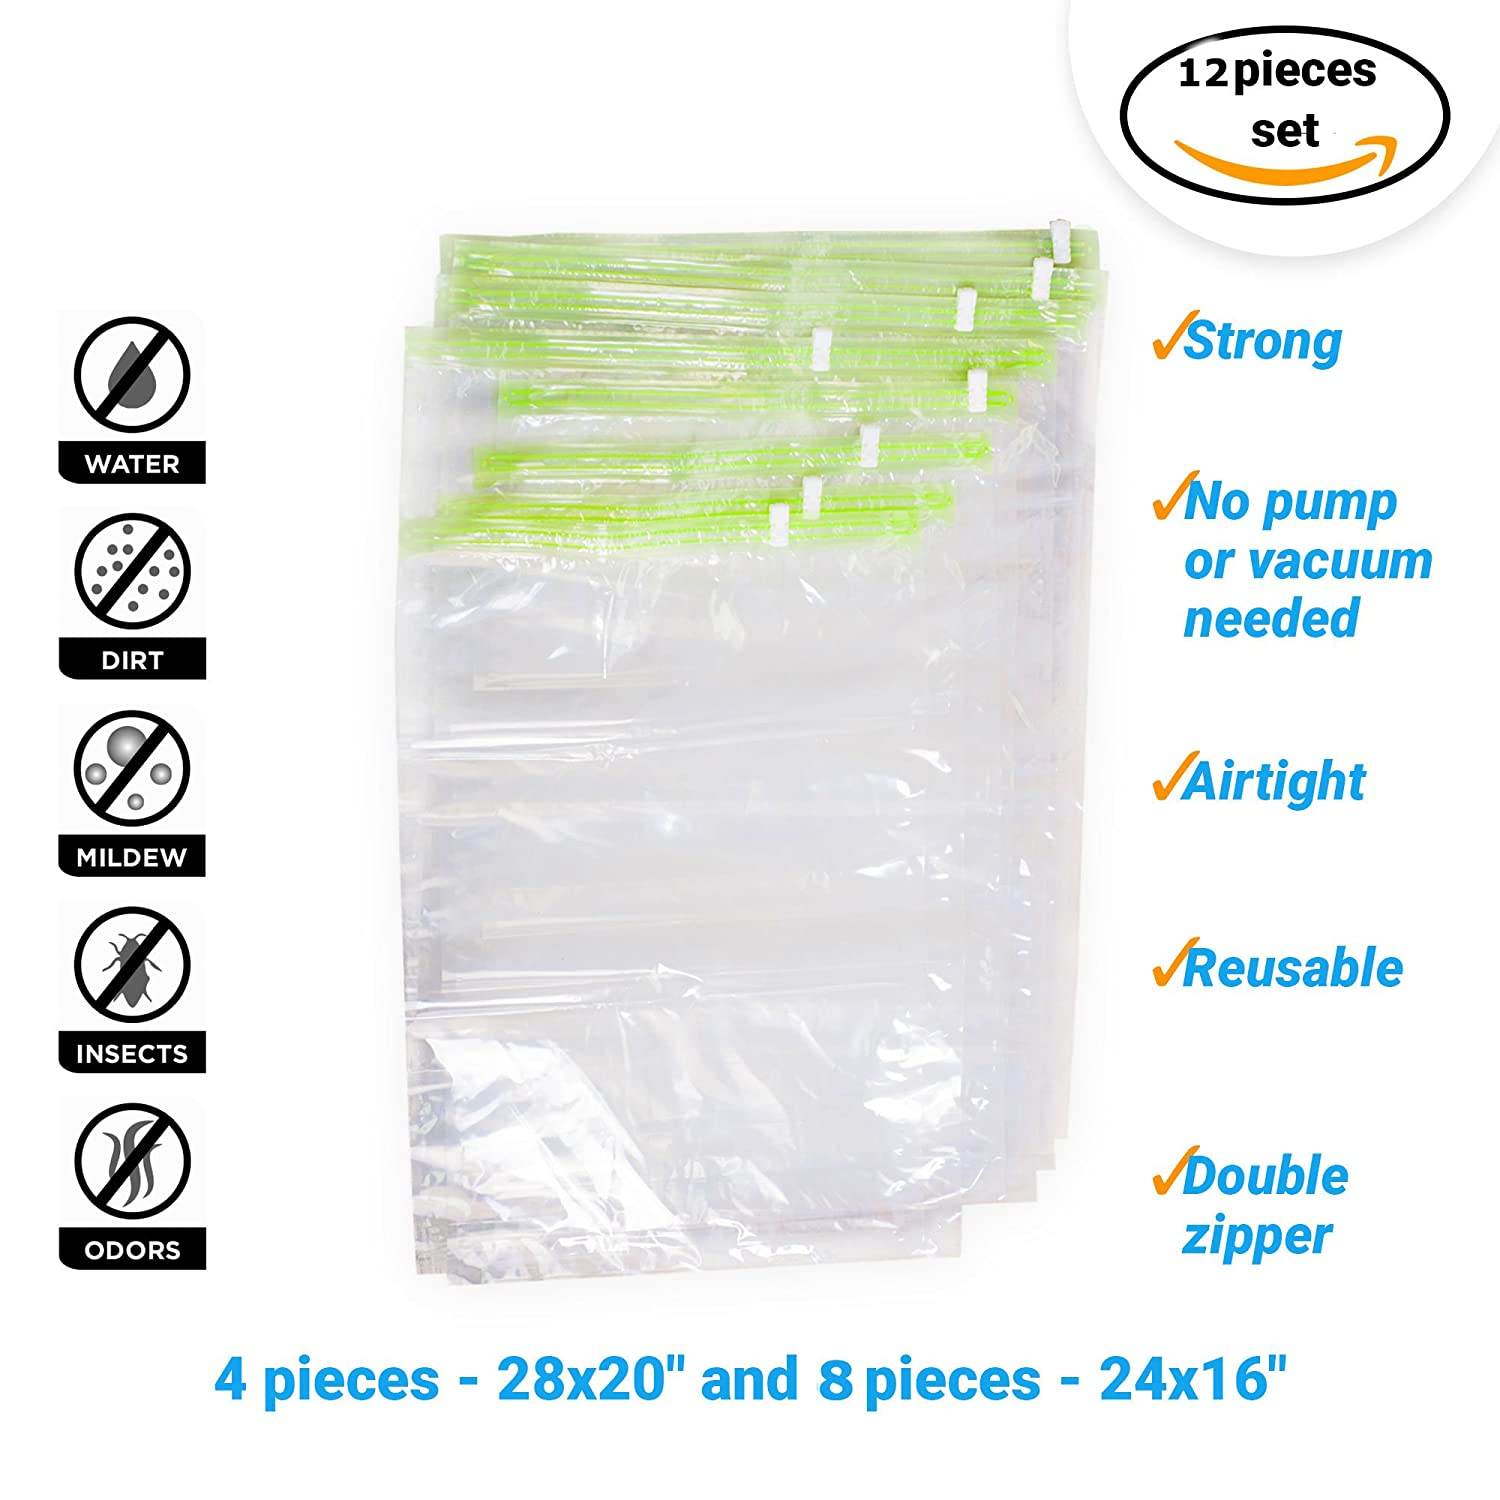 12 Travel Storage Bags for Clothes  Compression Bags for Travel  No Vacuum or Pump SacksSave Space